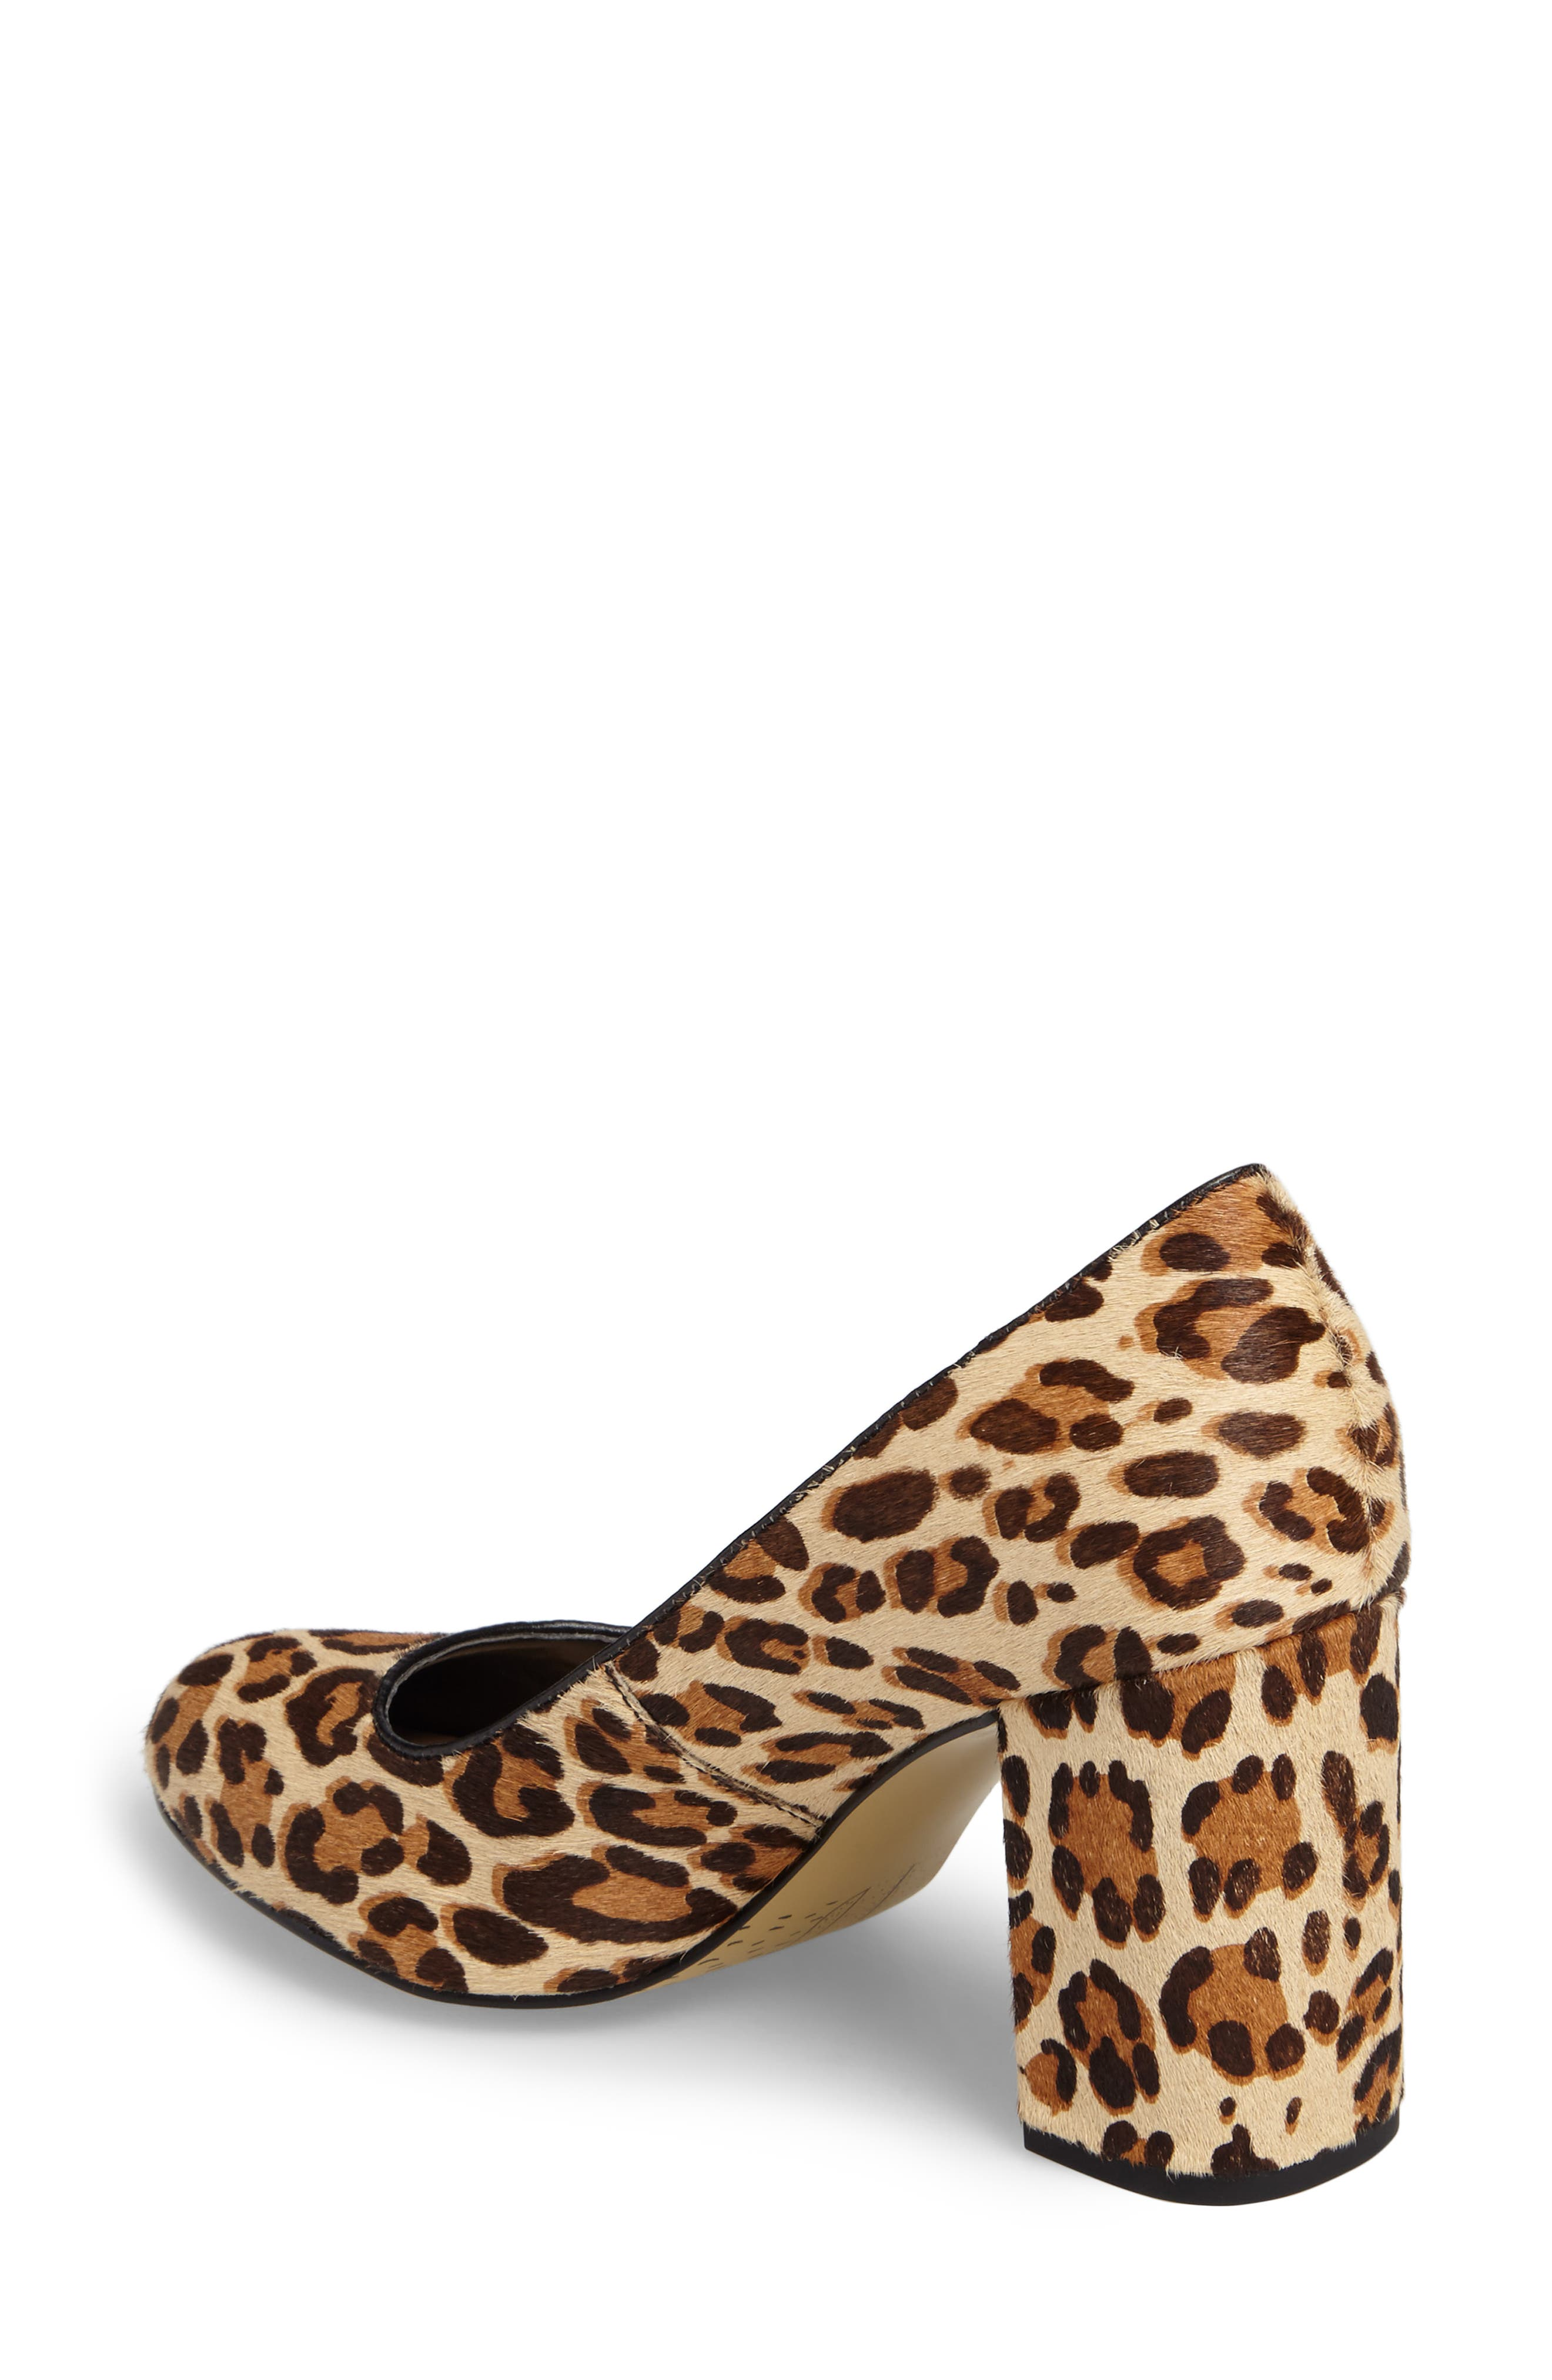 'Nara' Block Heel Pump,                             Alternate thumbnail 2, color,                             Leopard Pony Calf Hair